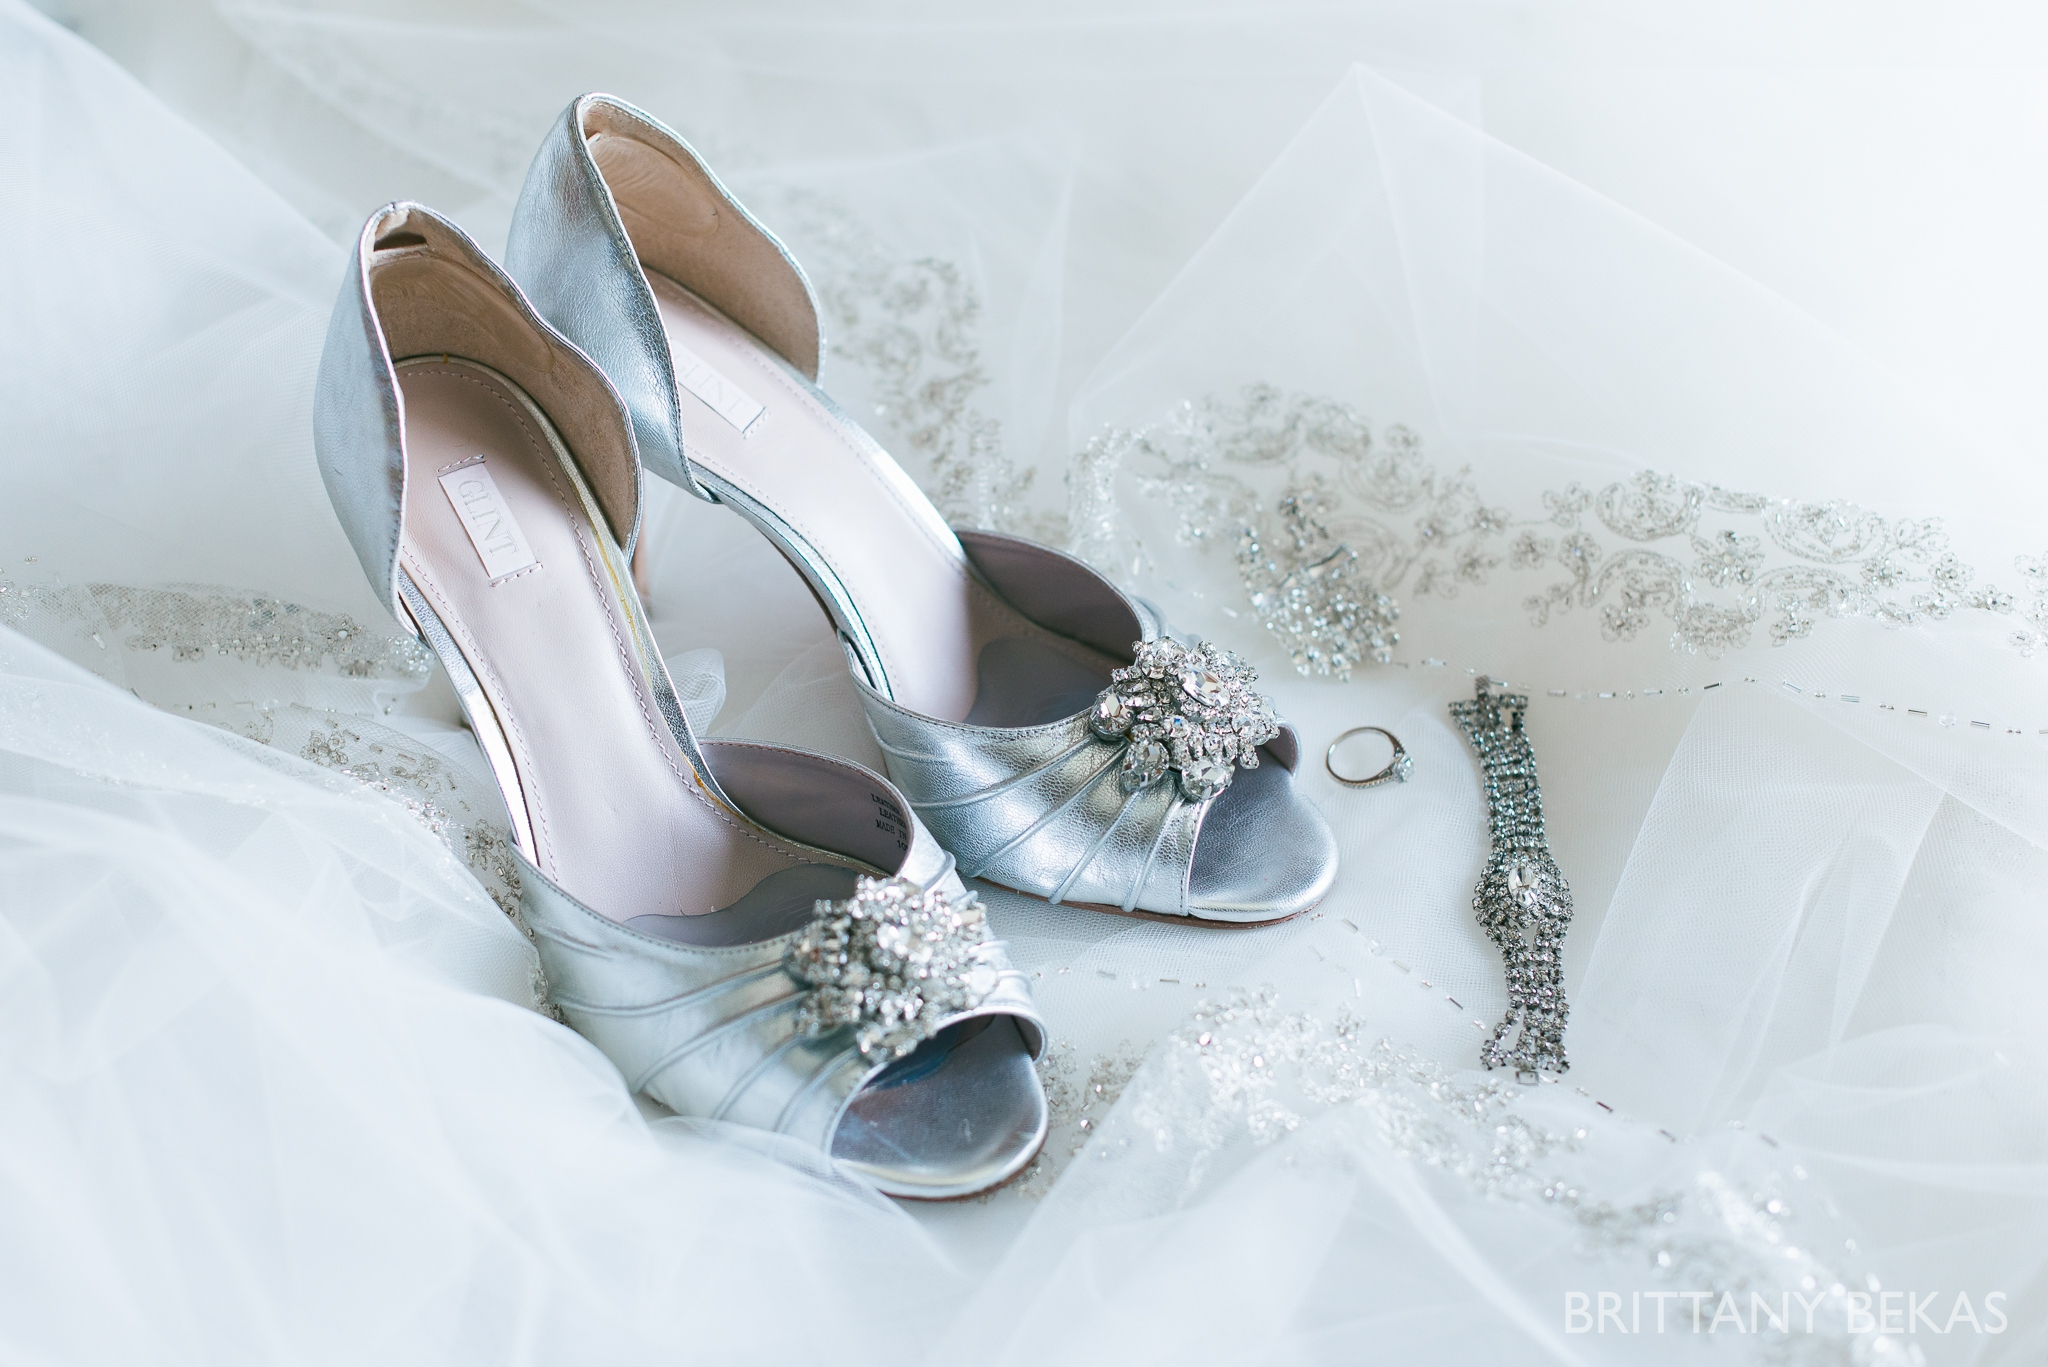 Patrick Haley Mansion Wedding - Brittany Bekas Photography_0001